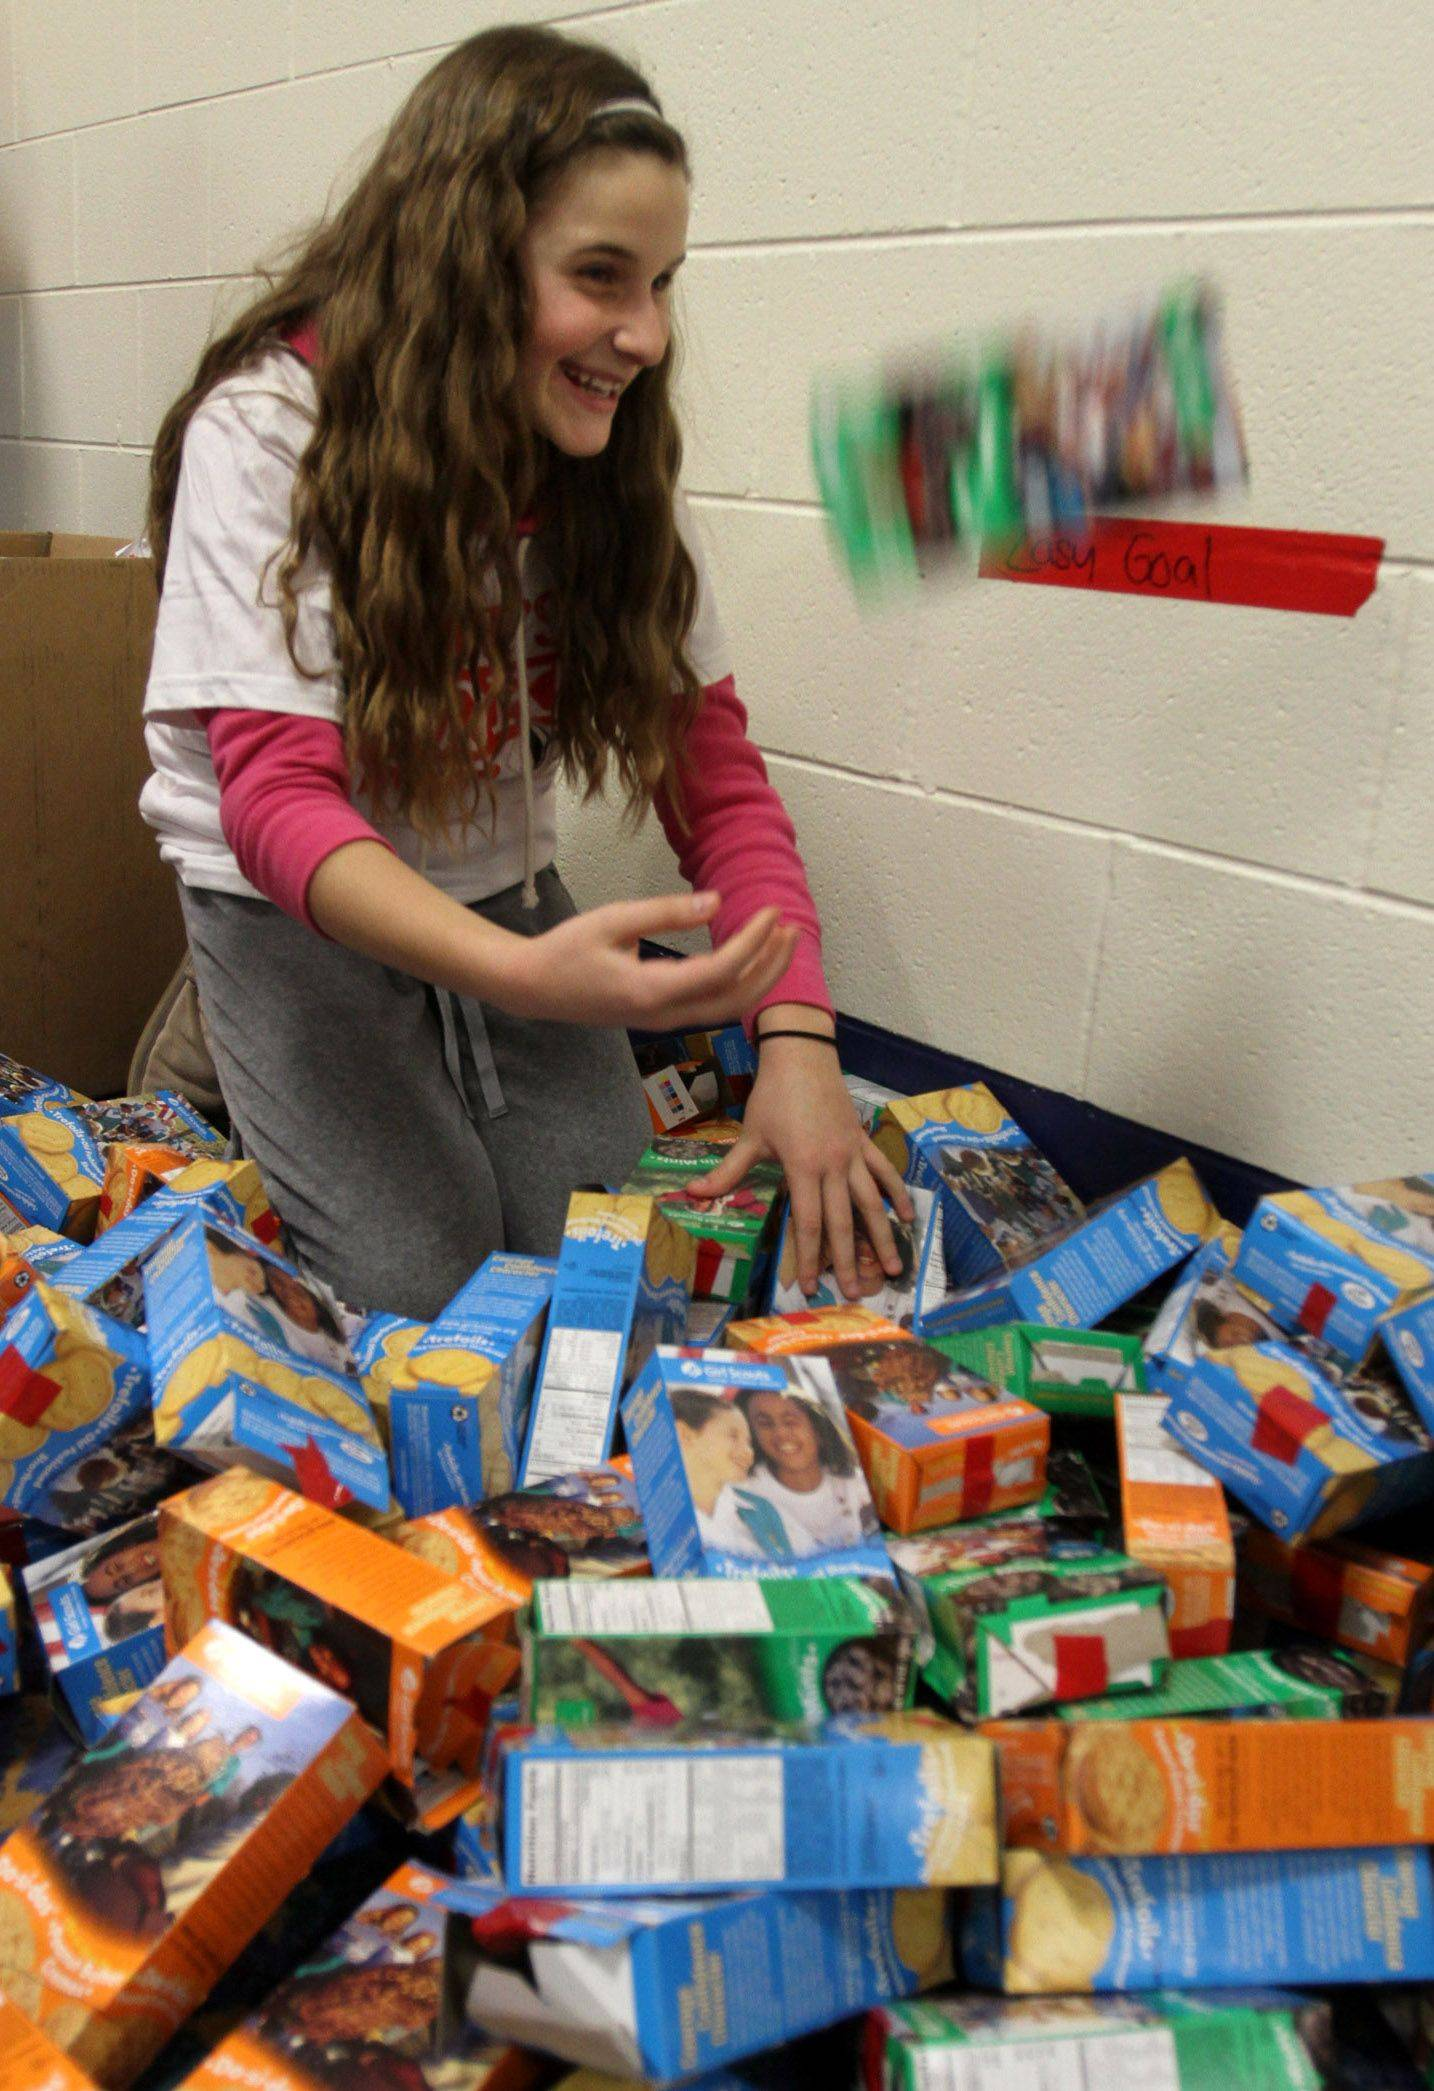 Girl Scout Julia Mills, 10, of Arlington Heights tosses a cookie box after trying to stack as many as she could before the pep rally at Allstate Arena in Rosemont on Saturday, January 8.